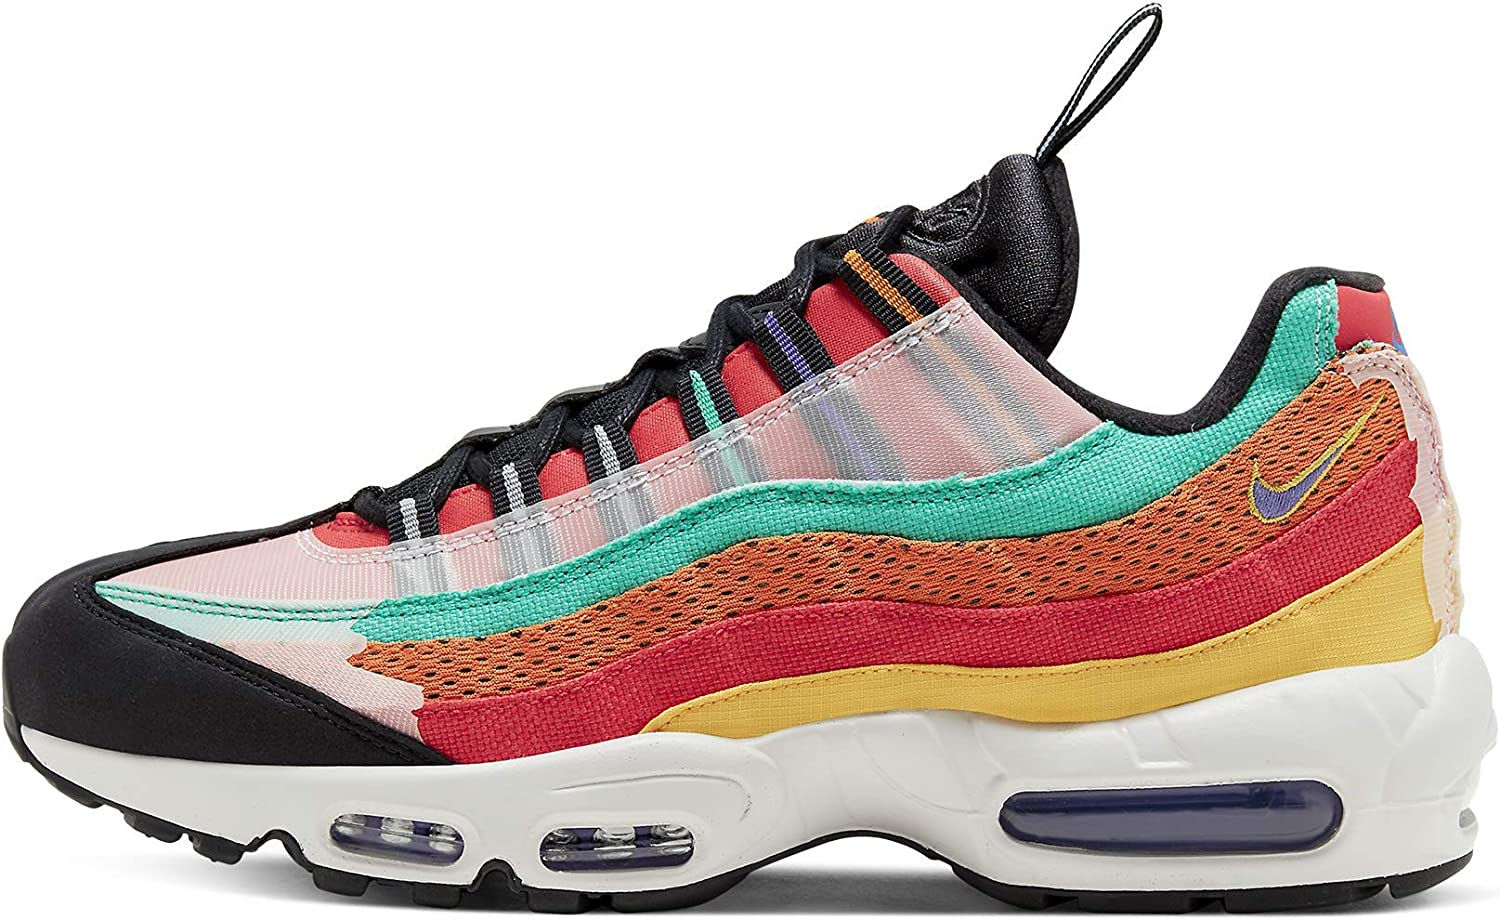 Nike Mens Air Max 95 CT7435 901 - Black History 2020 Month S OFFicial store National uniform free shipping BHM